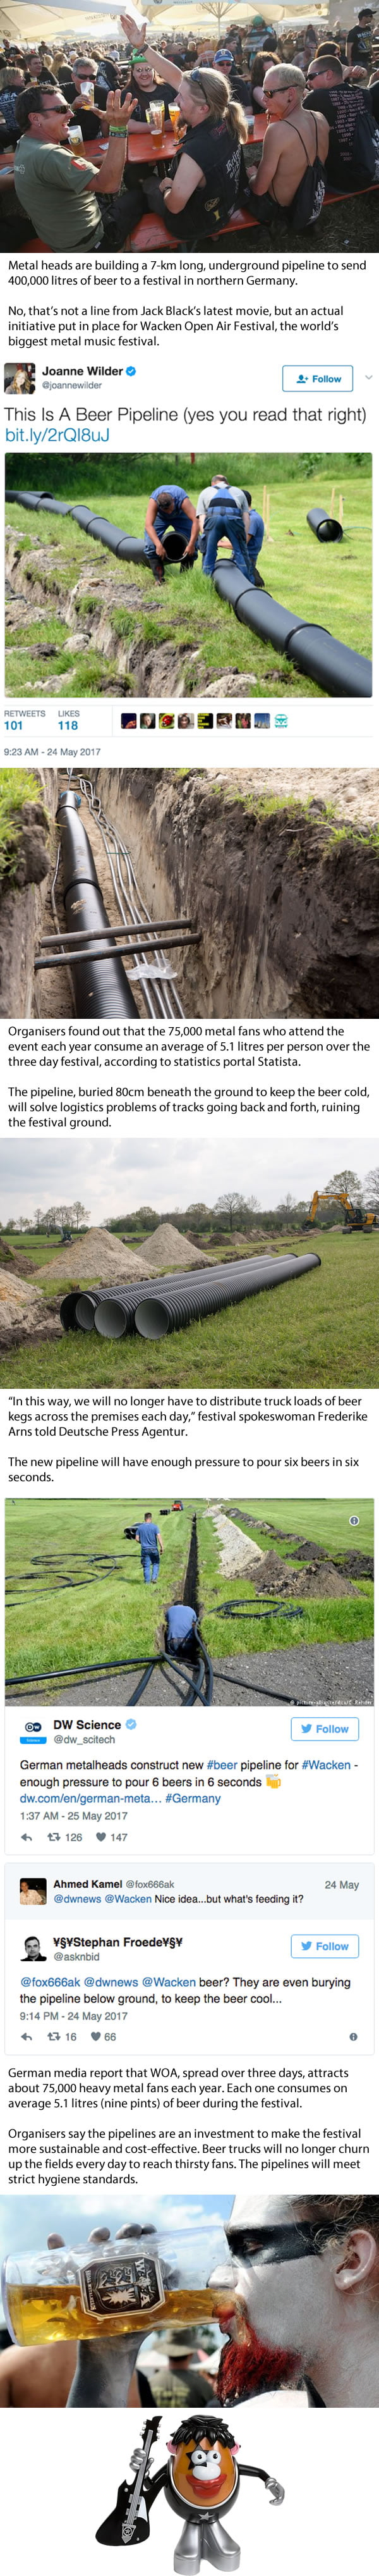 Germany's Wacken hard rock festival builds 7-km beer pipeline to deliver 400,000 litres of beer